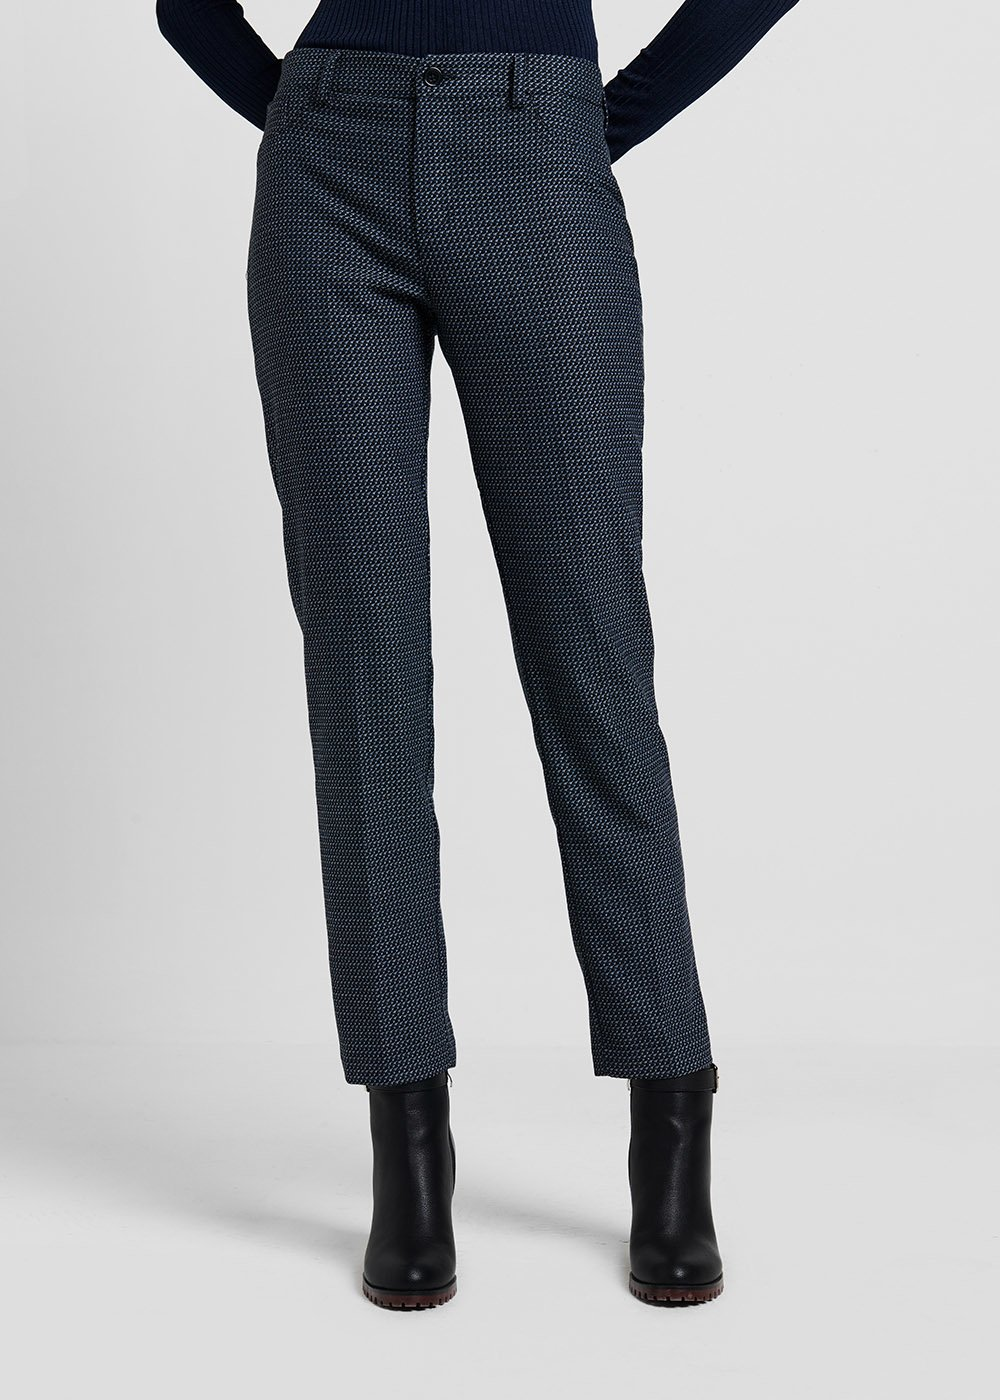 Kelly D trousers in jacquard fabric - Blue / Black Fantasia - Woman